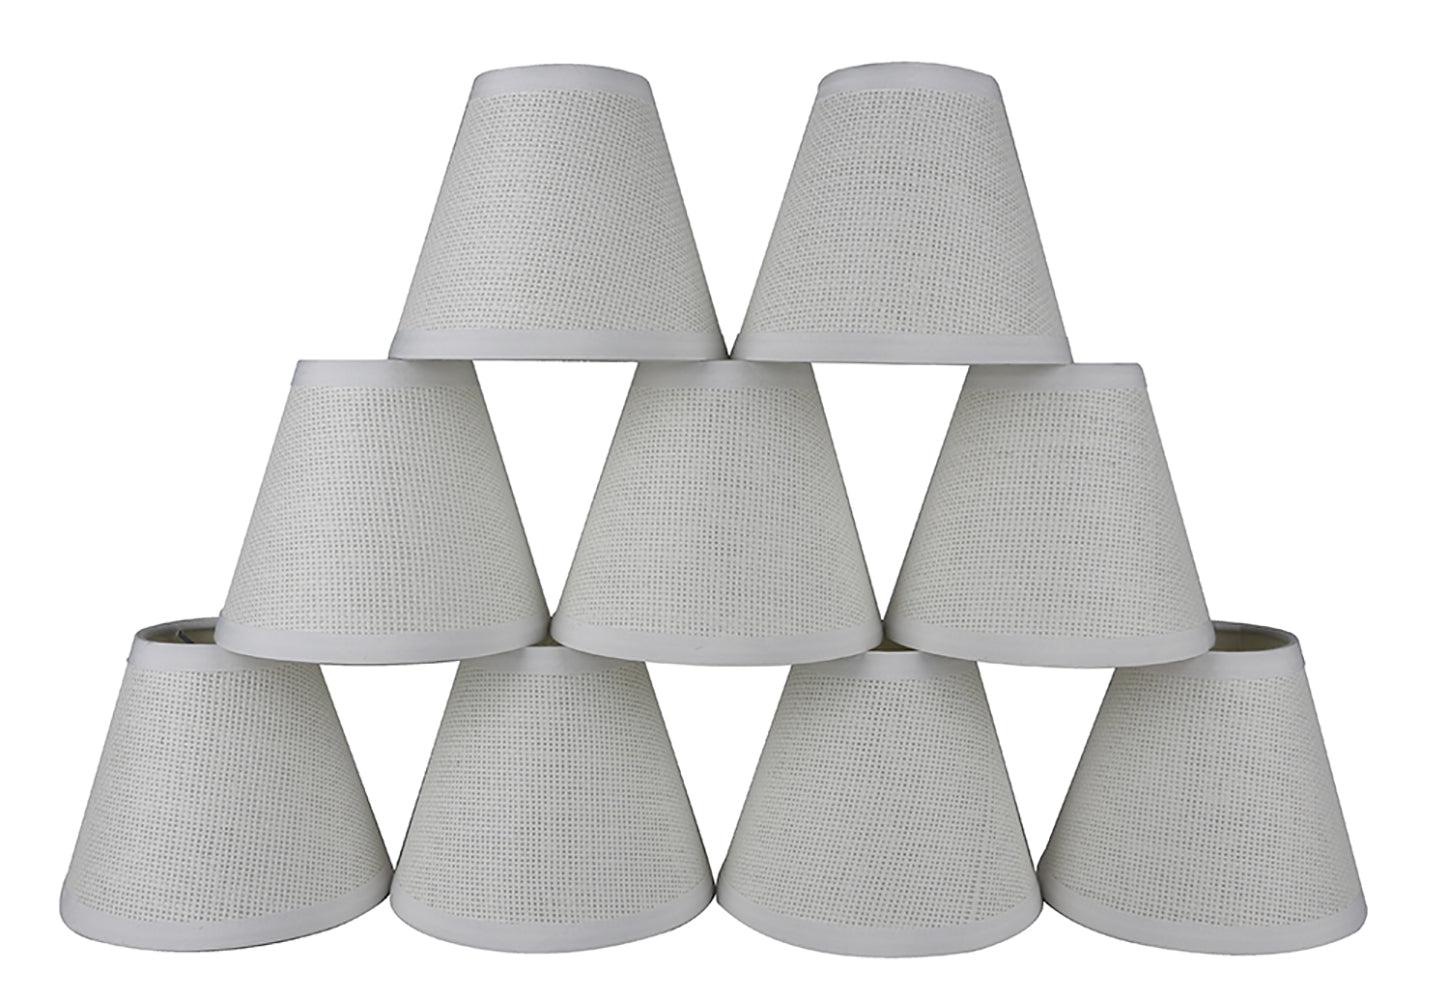 "Woven Paper White Chandelier Lamp Shades - 5"" & 6"" Sizes"